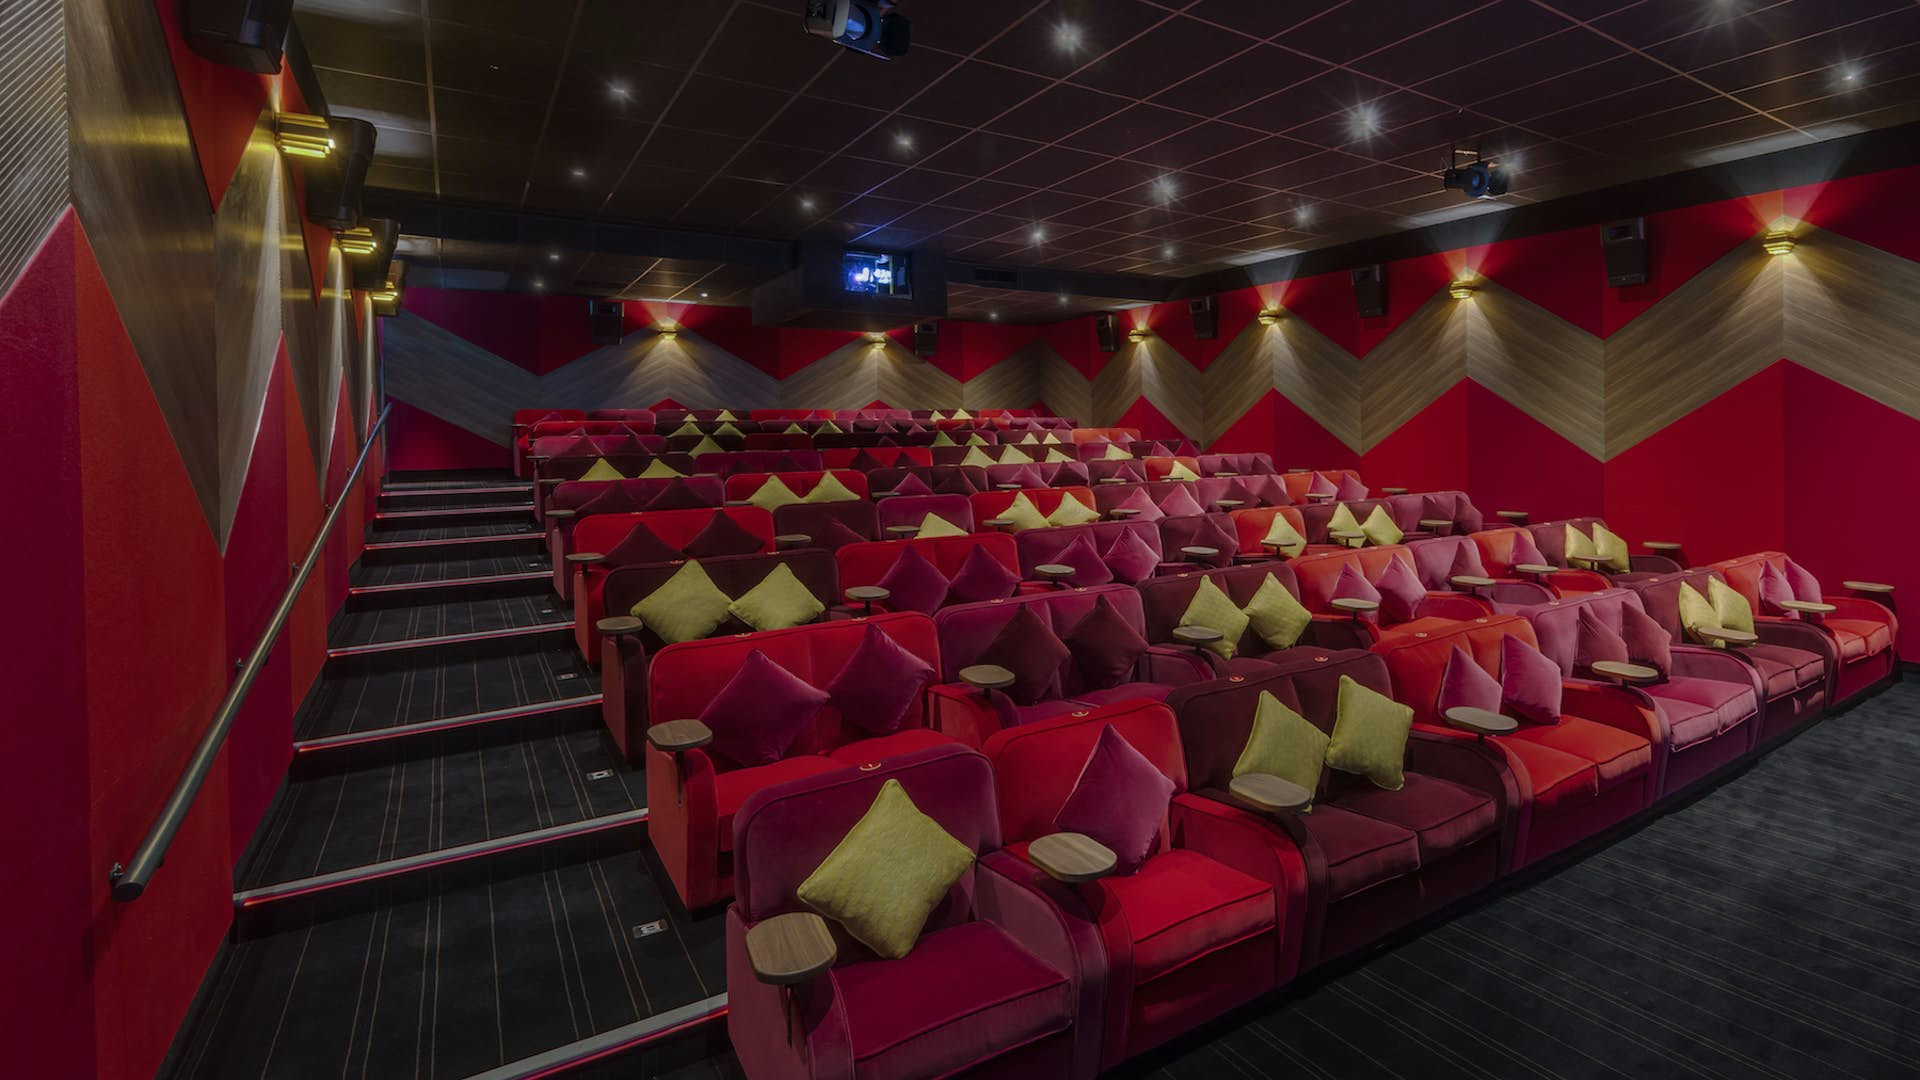 reputable site 1dd6b 02729 Hire Space - Venue hire Screen 2 at Everyman Cinema Kings Cross ...